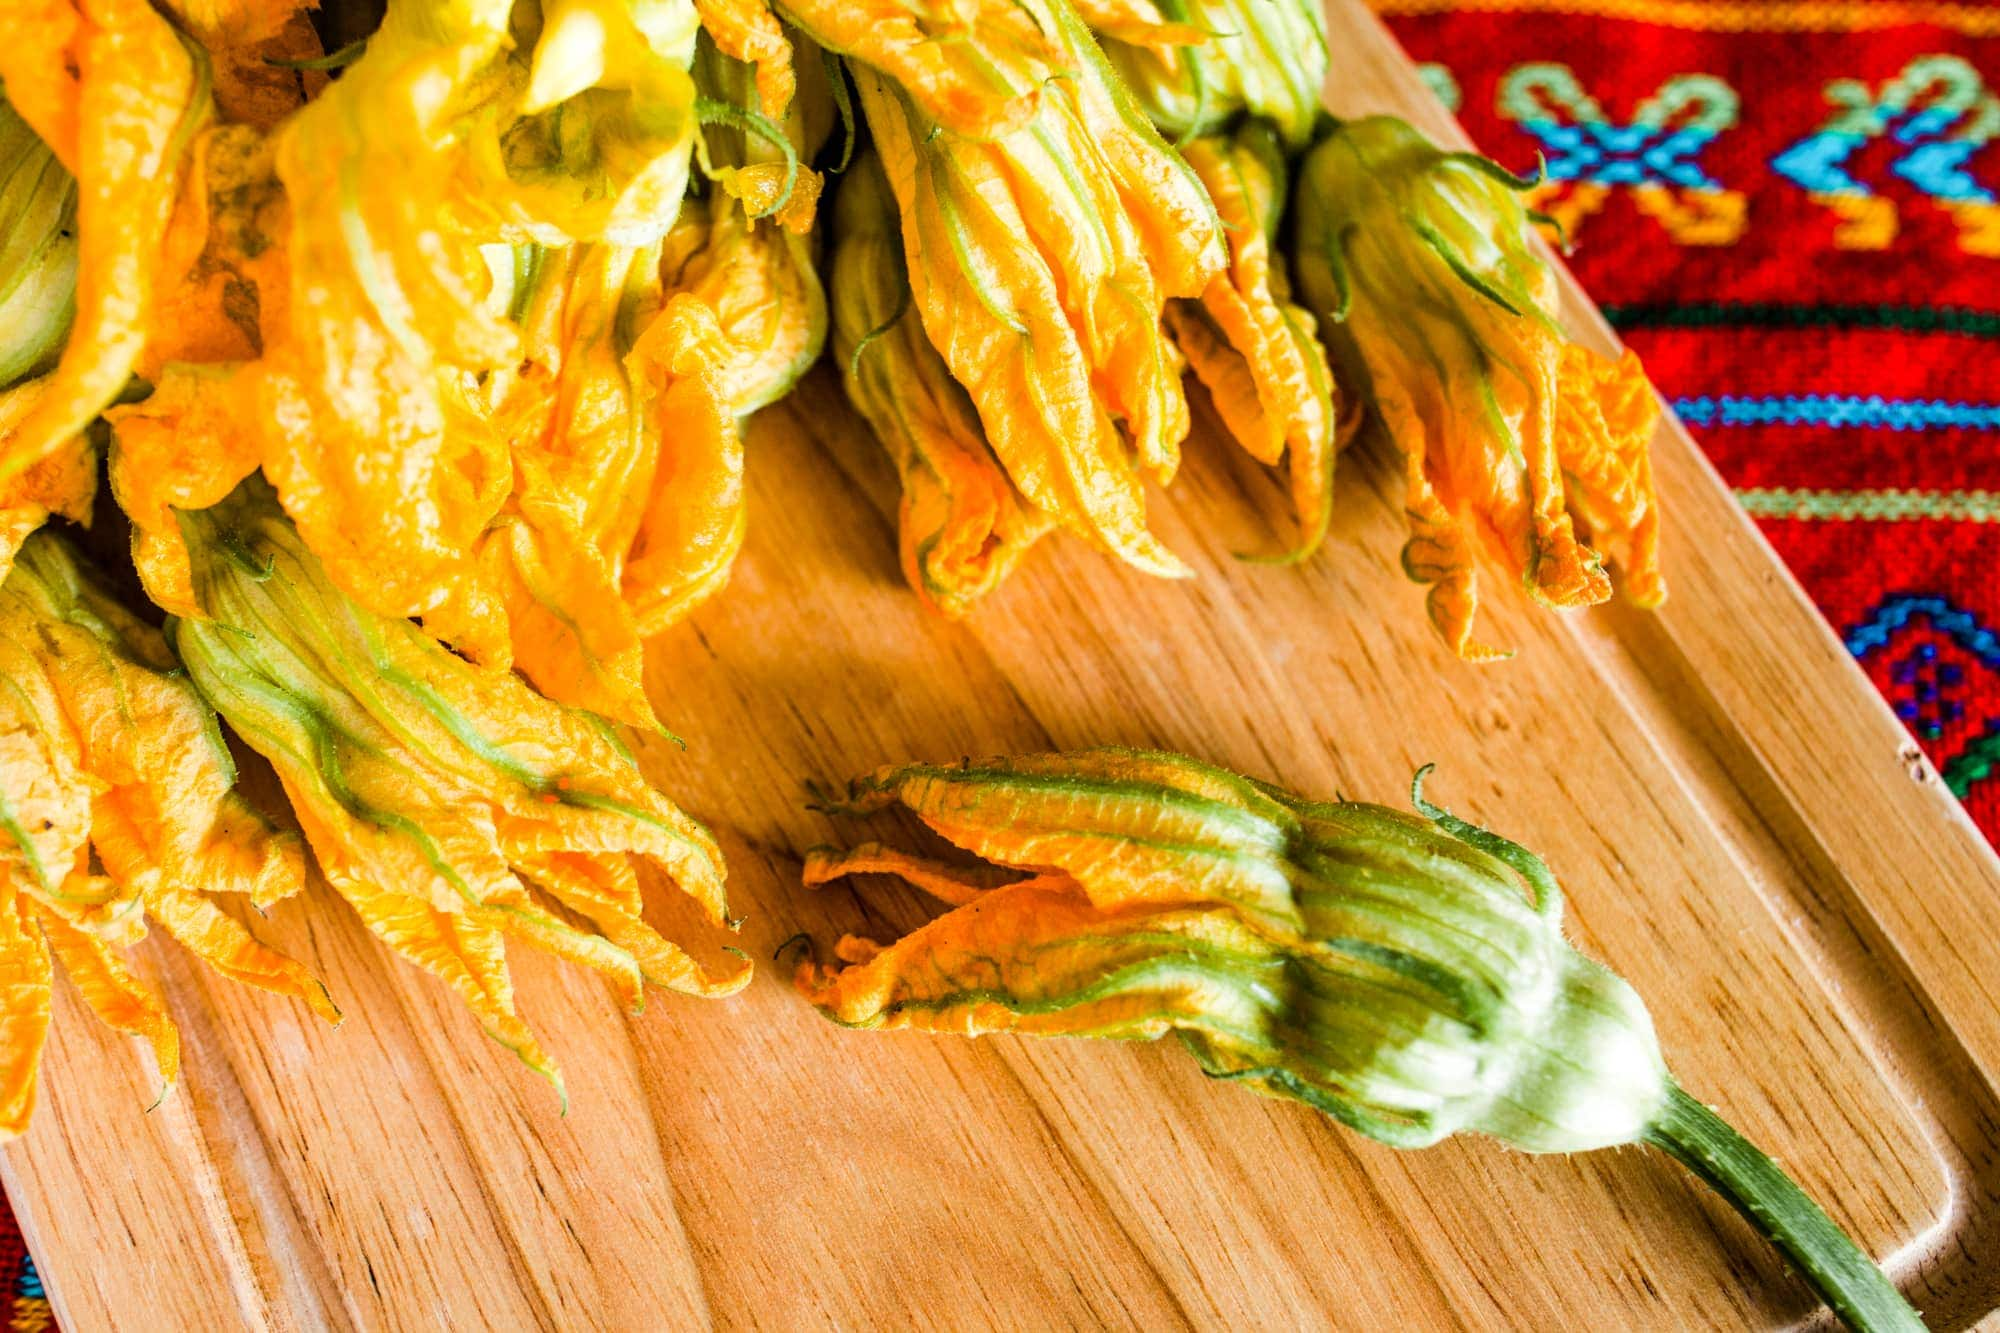 Zucchini flowers on table